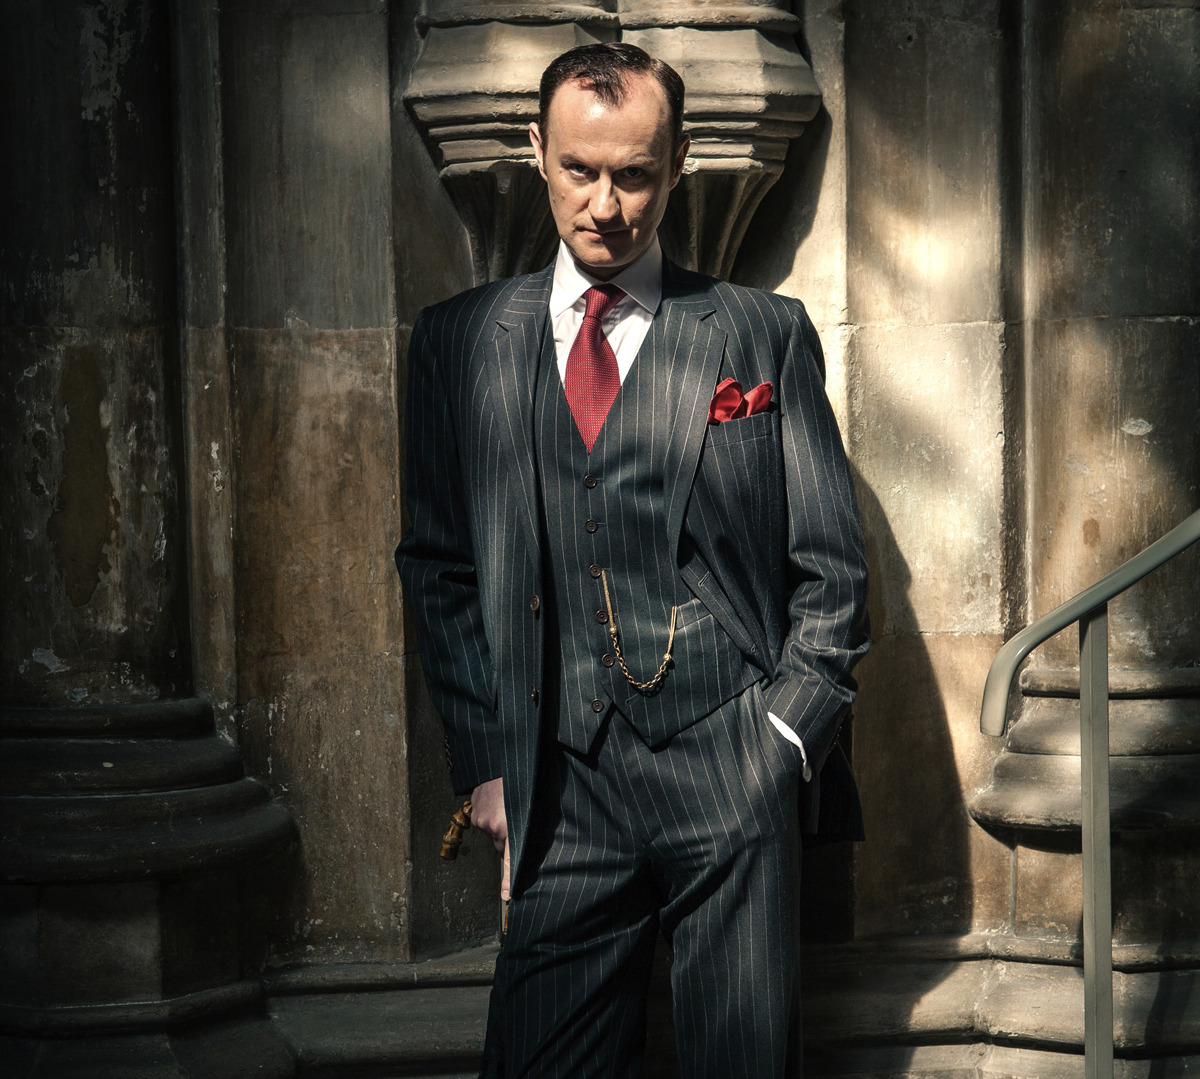 Animals In Suits Wallpaper Sherlock Mycroft Mark Gatiss Mycroft Holmes Sherlock Pbs